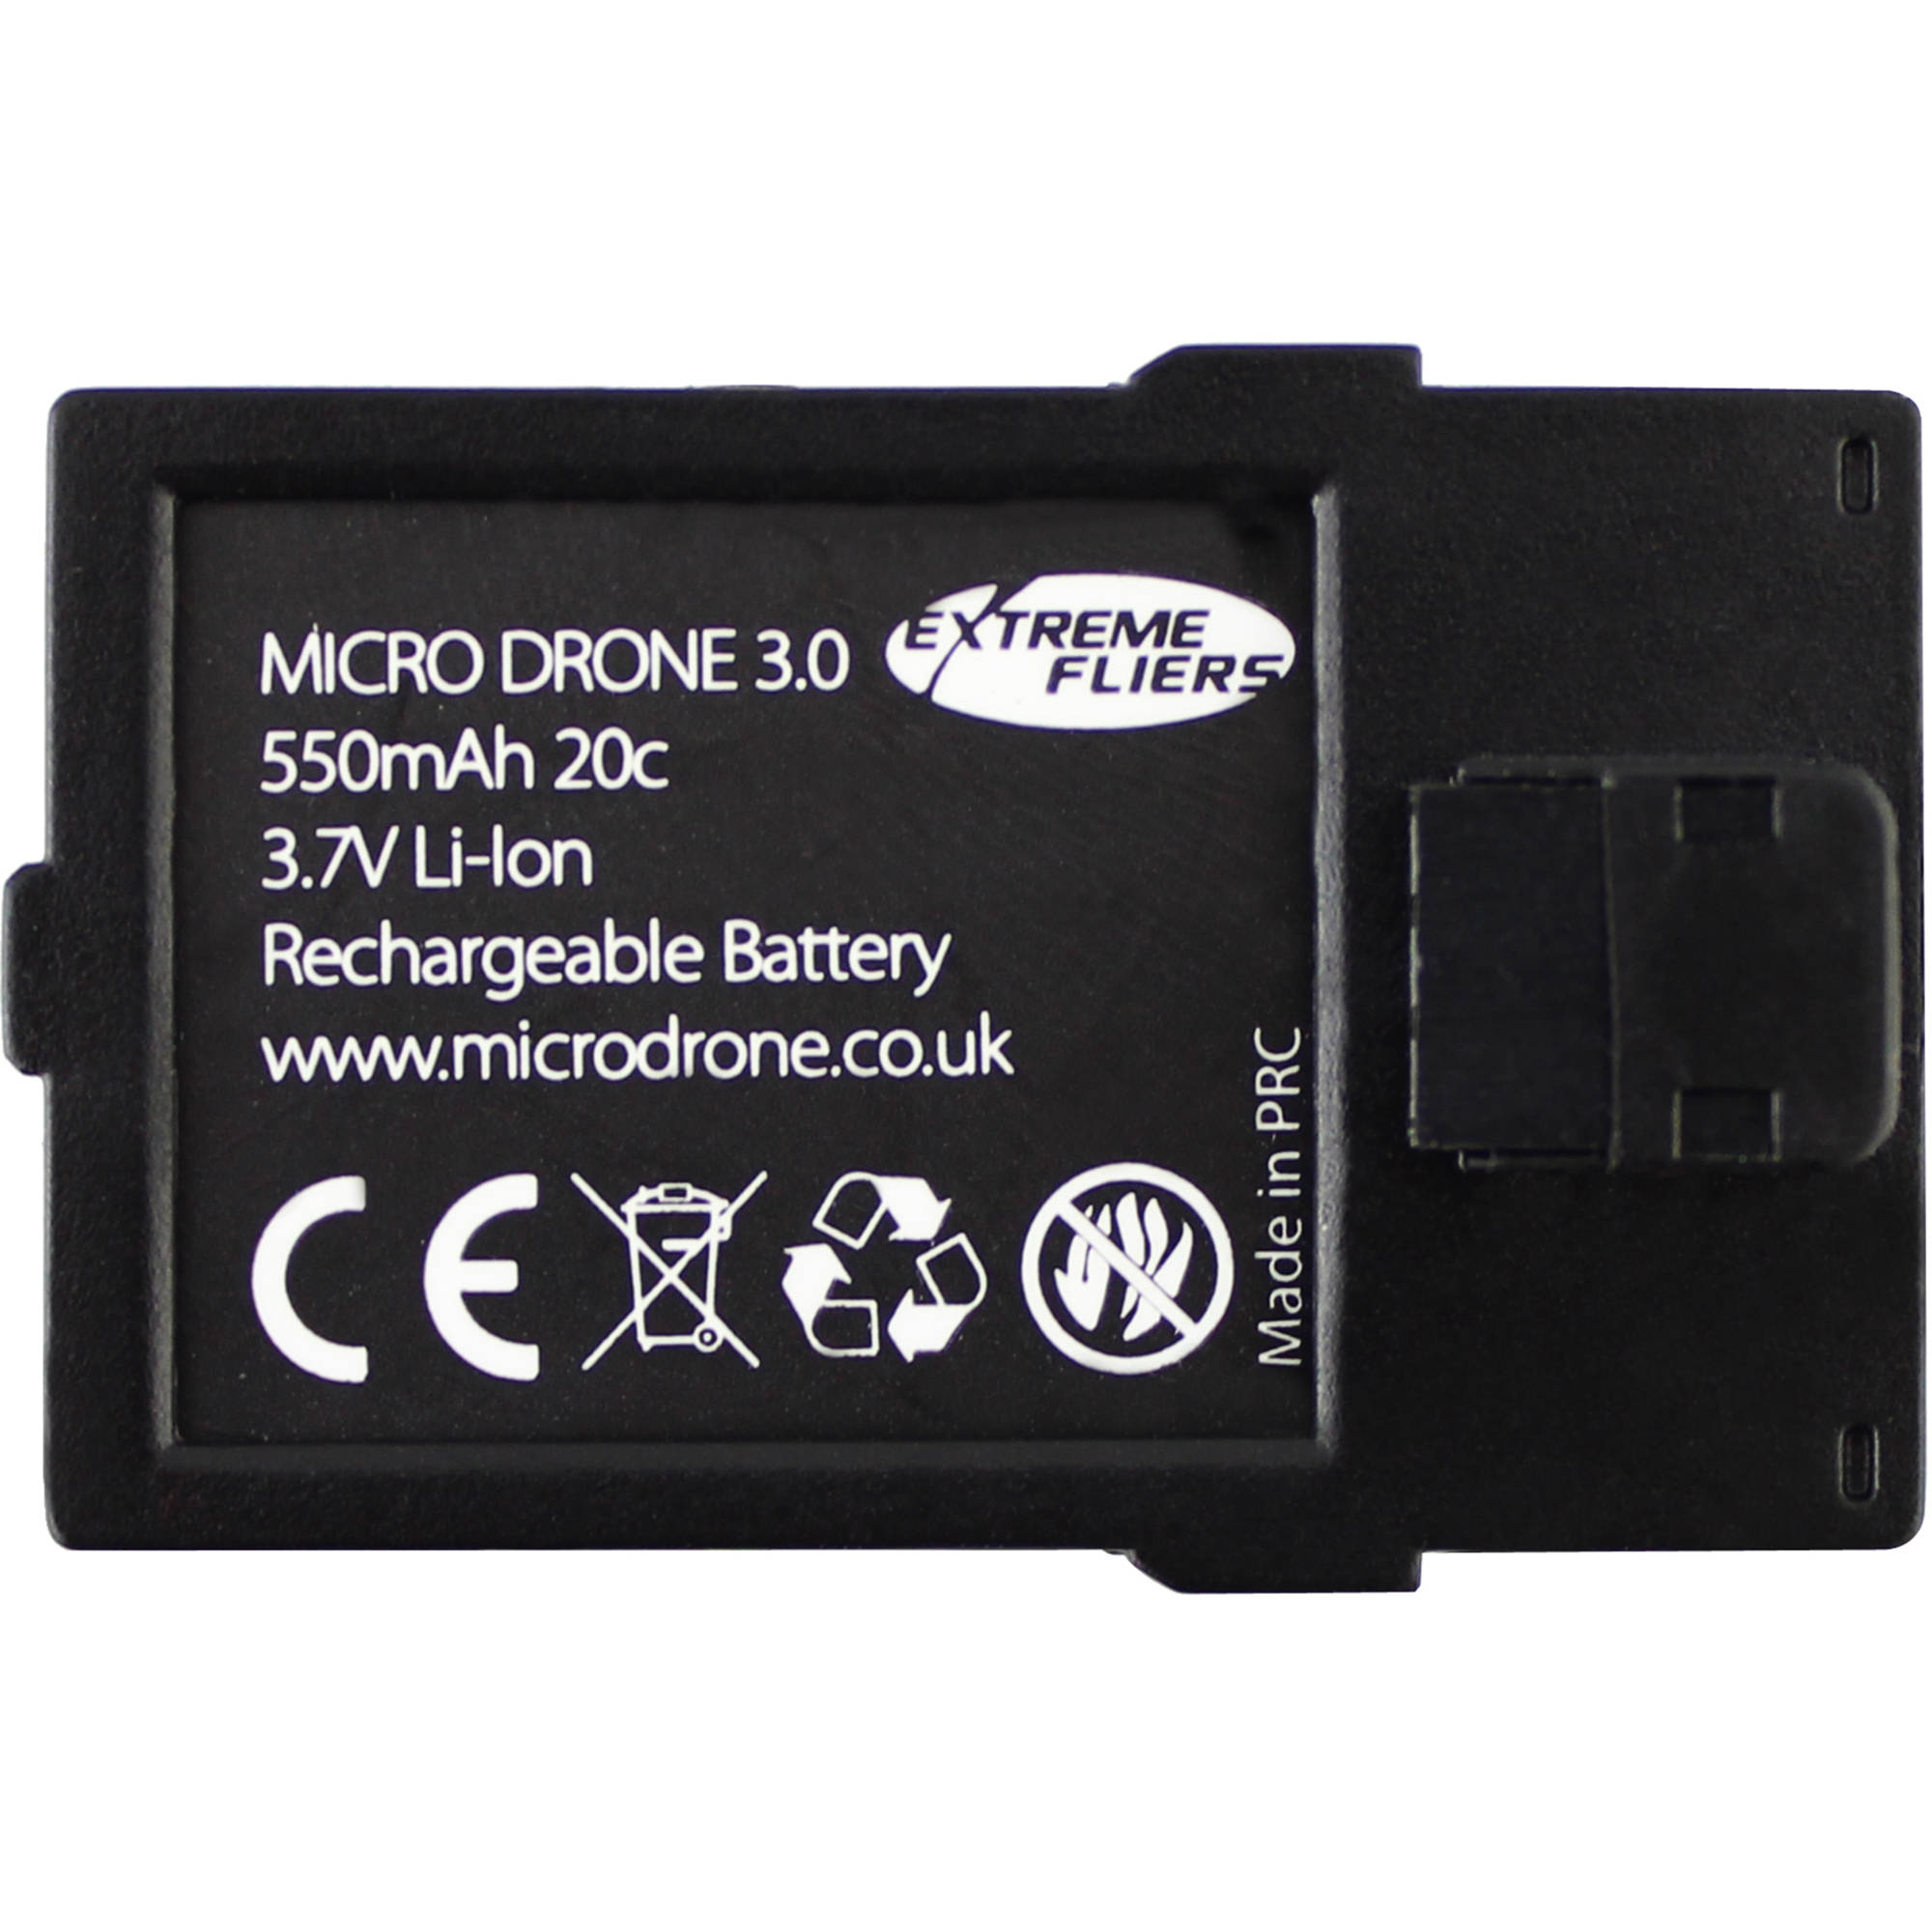 Extreme Fliers 550mAh LiPo Flight Battery for Micro Drone BA550